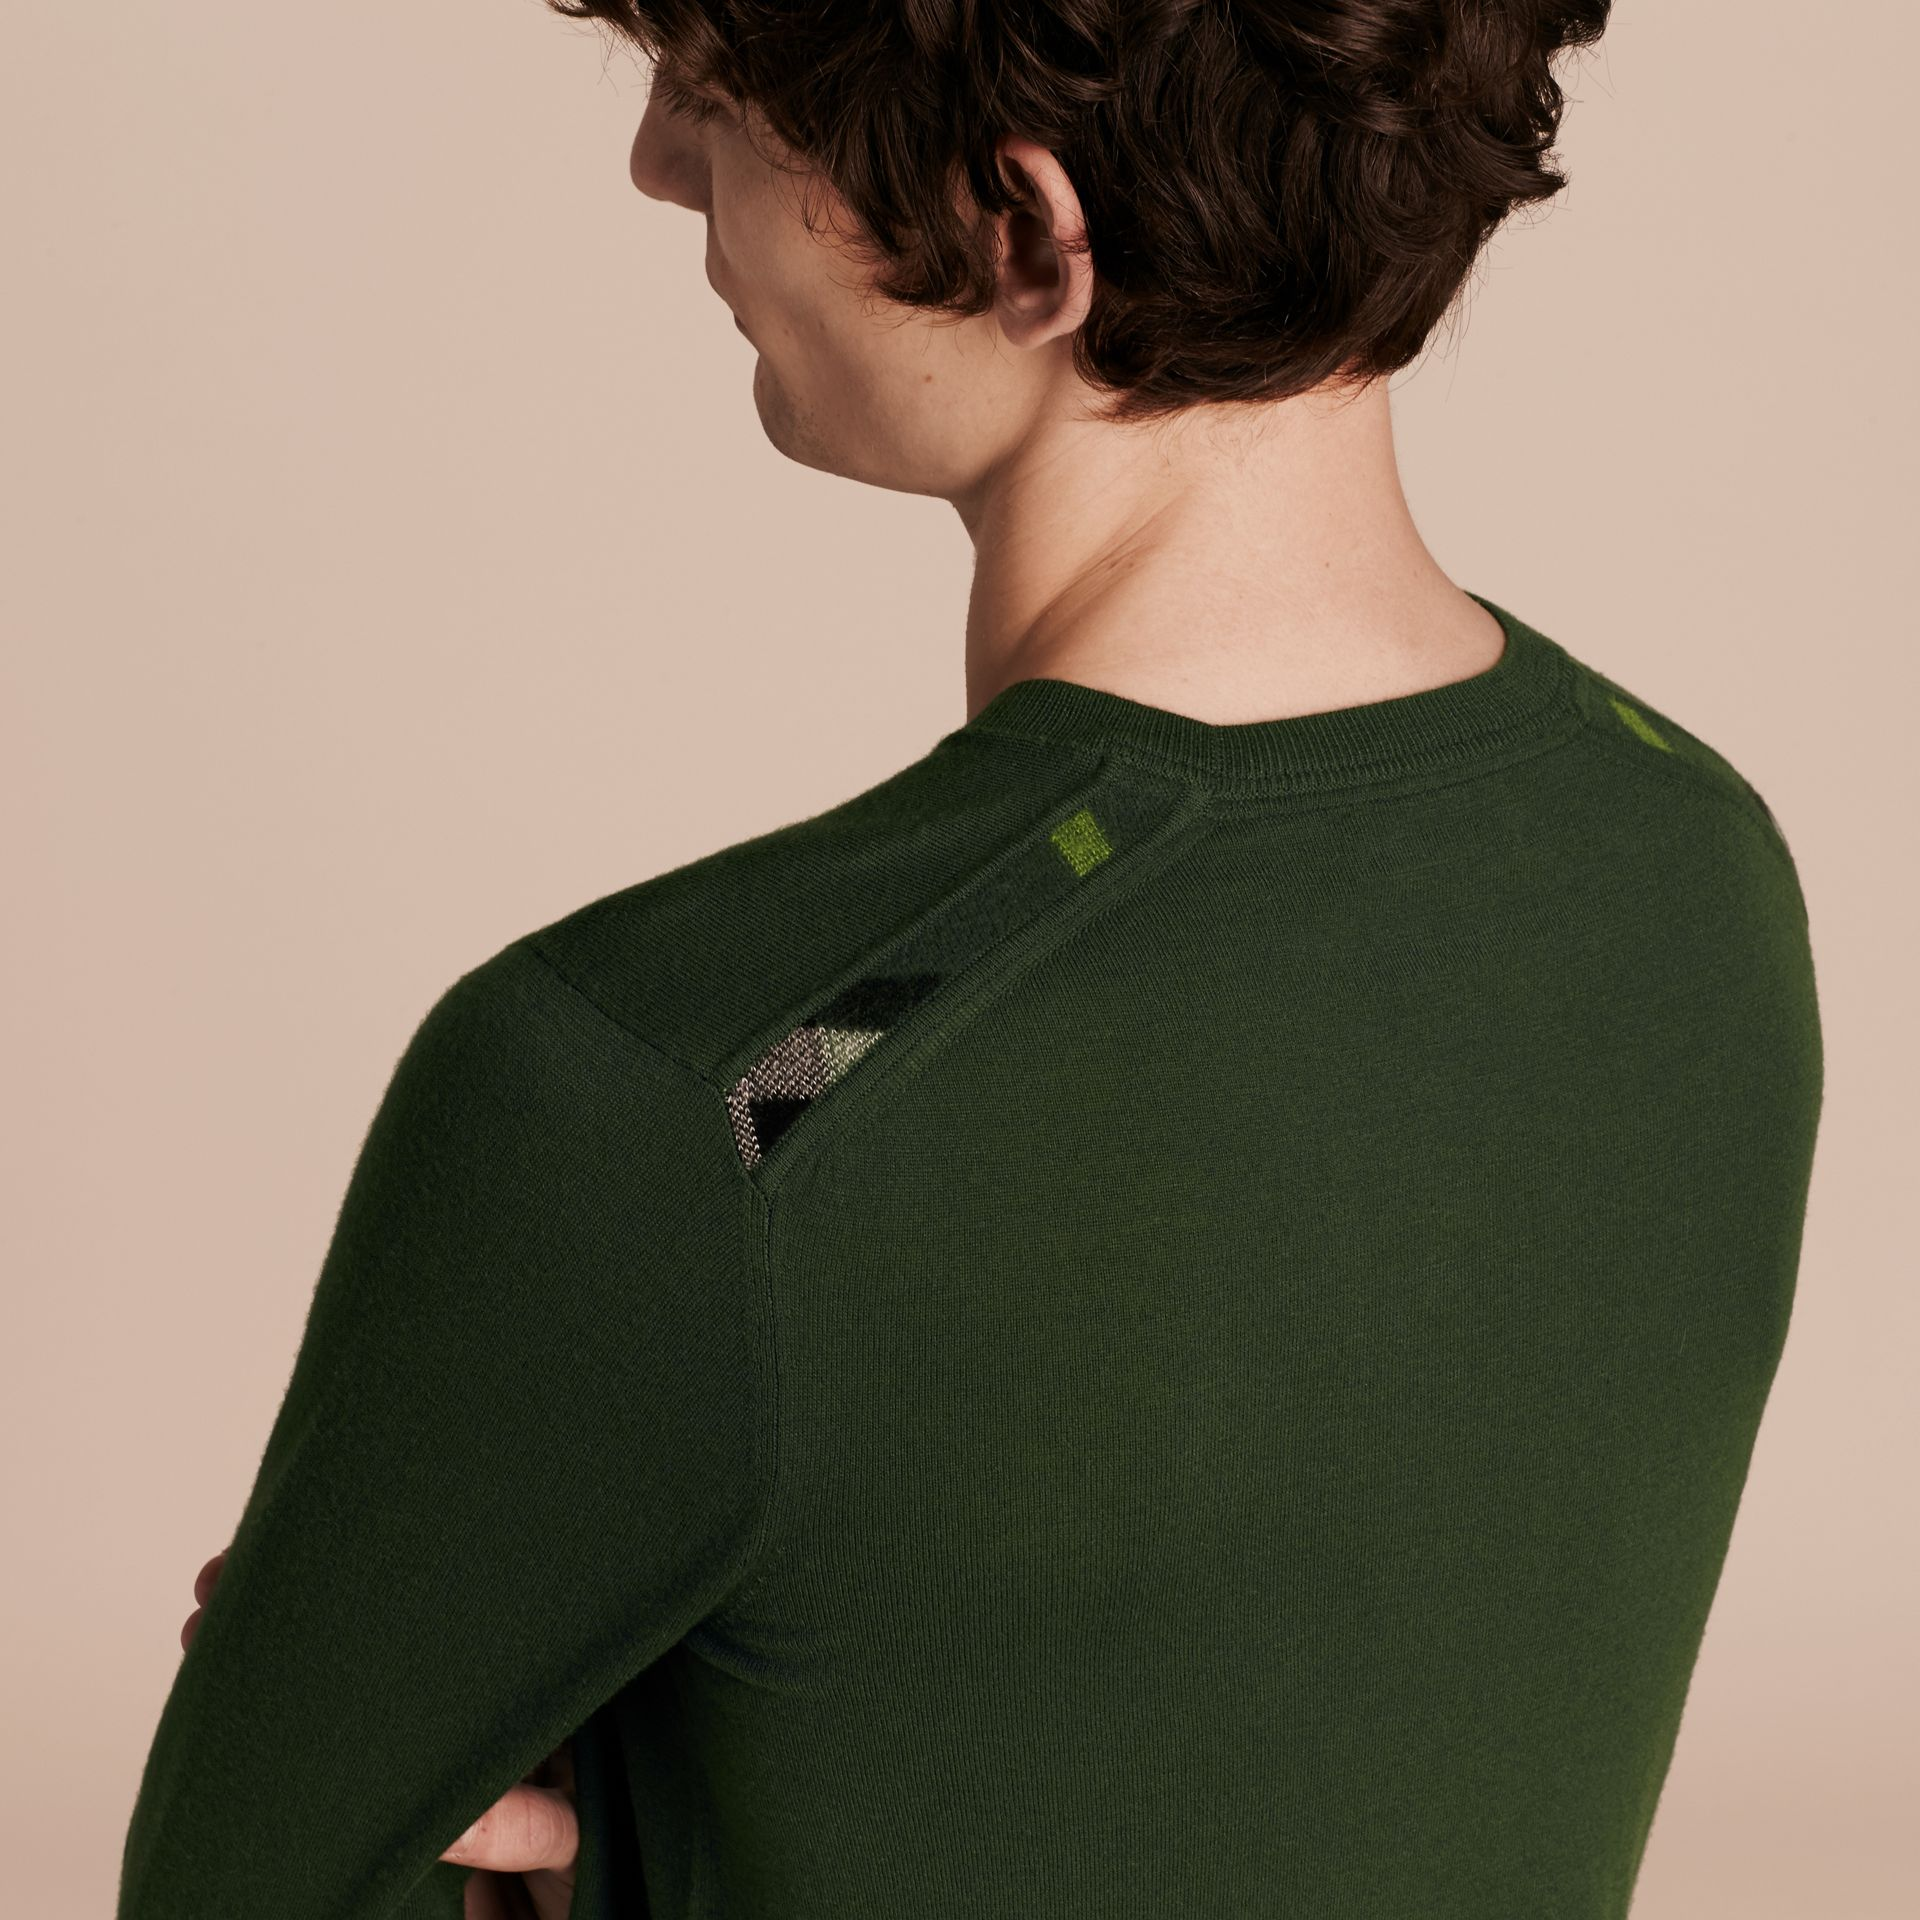 Olive green Lightweight Crew Neck Cashmere Sweater with Check Trim Olive Green - gallery image 5